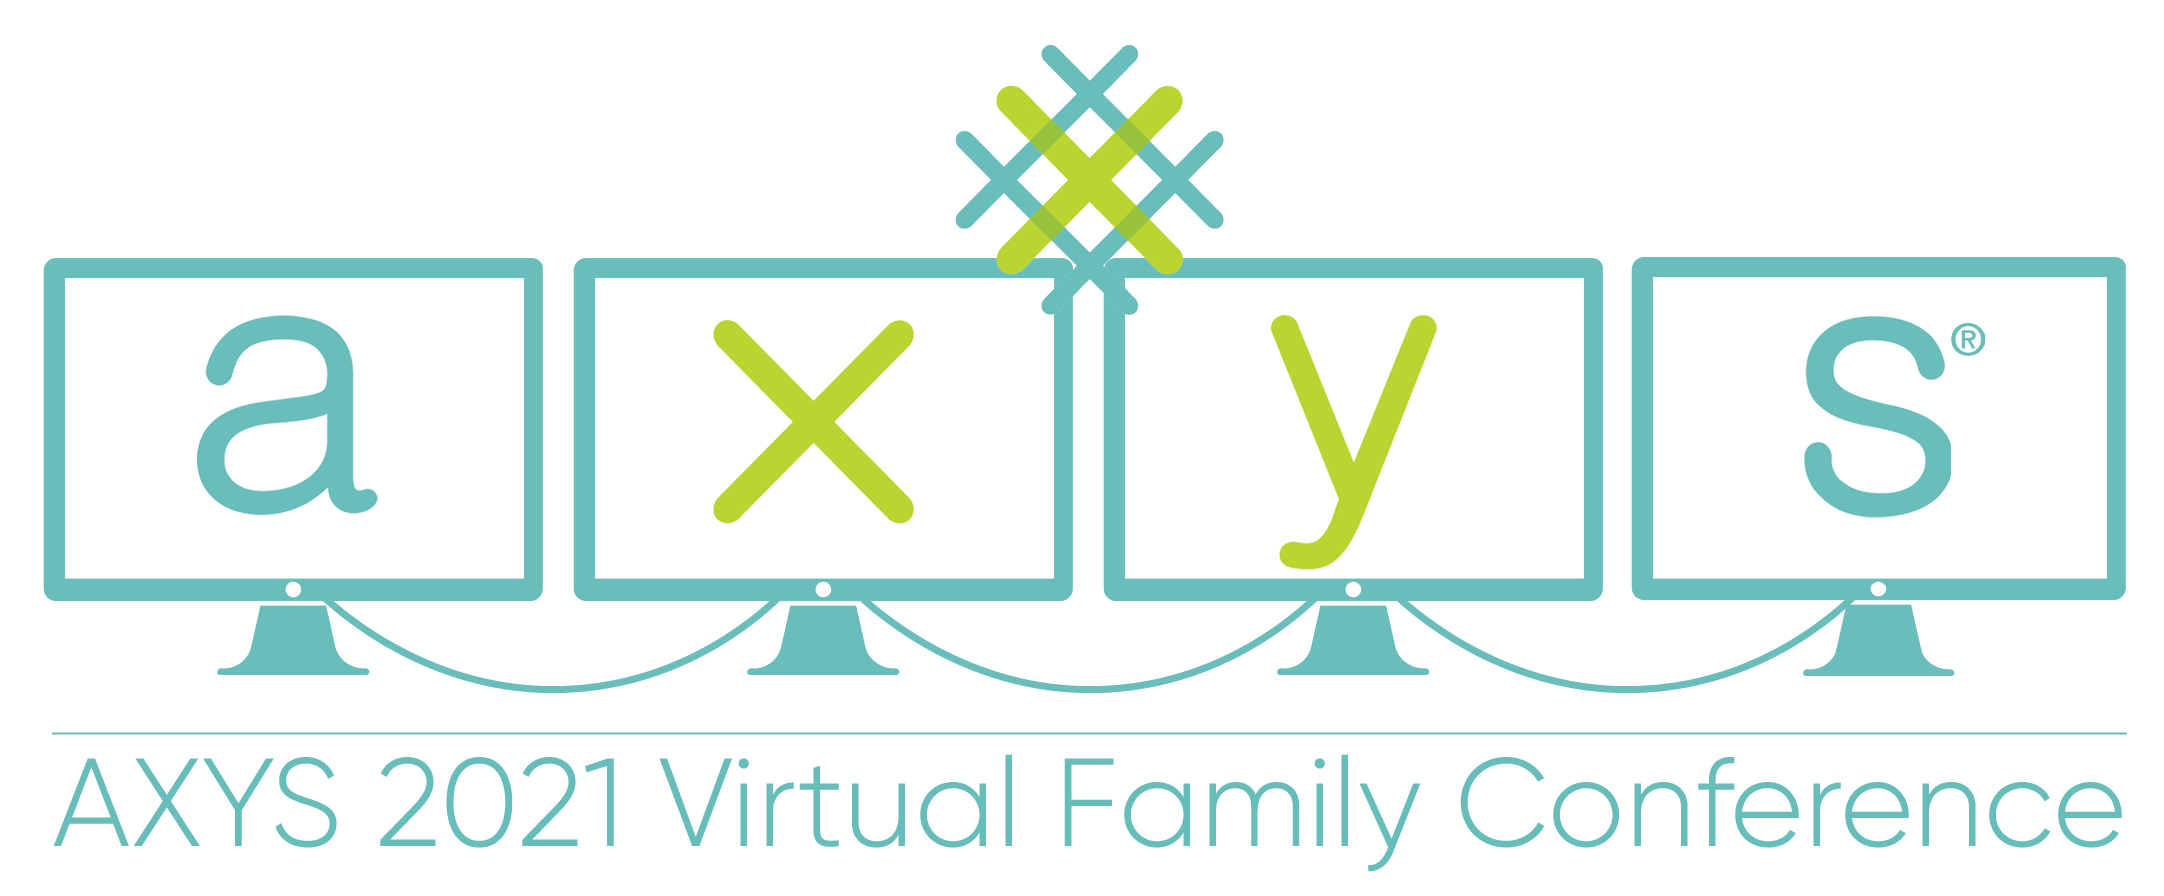 AXYS 2021 Virtual Family Conference Logo